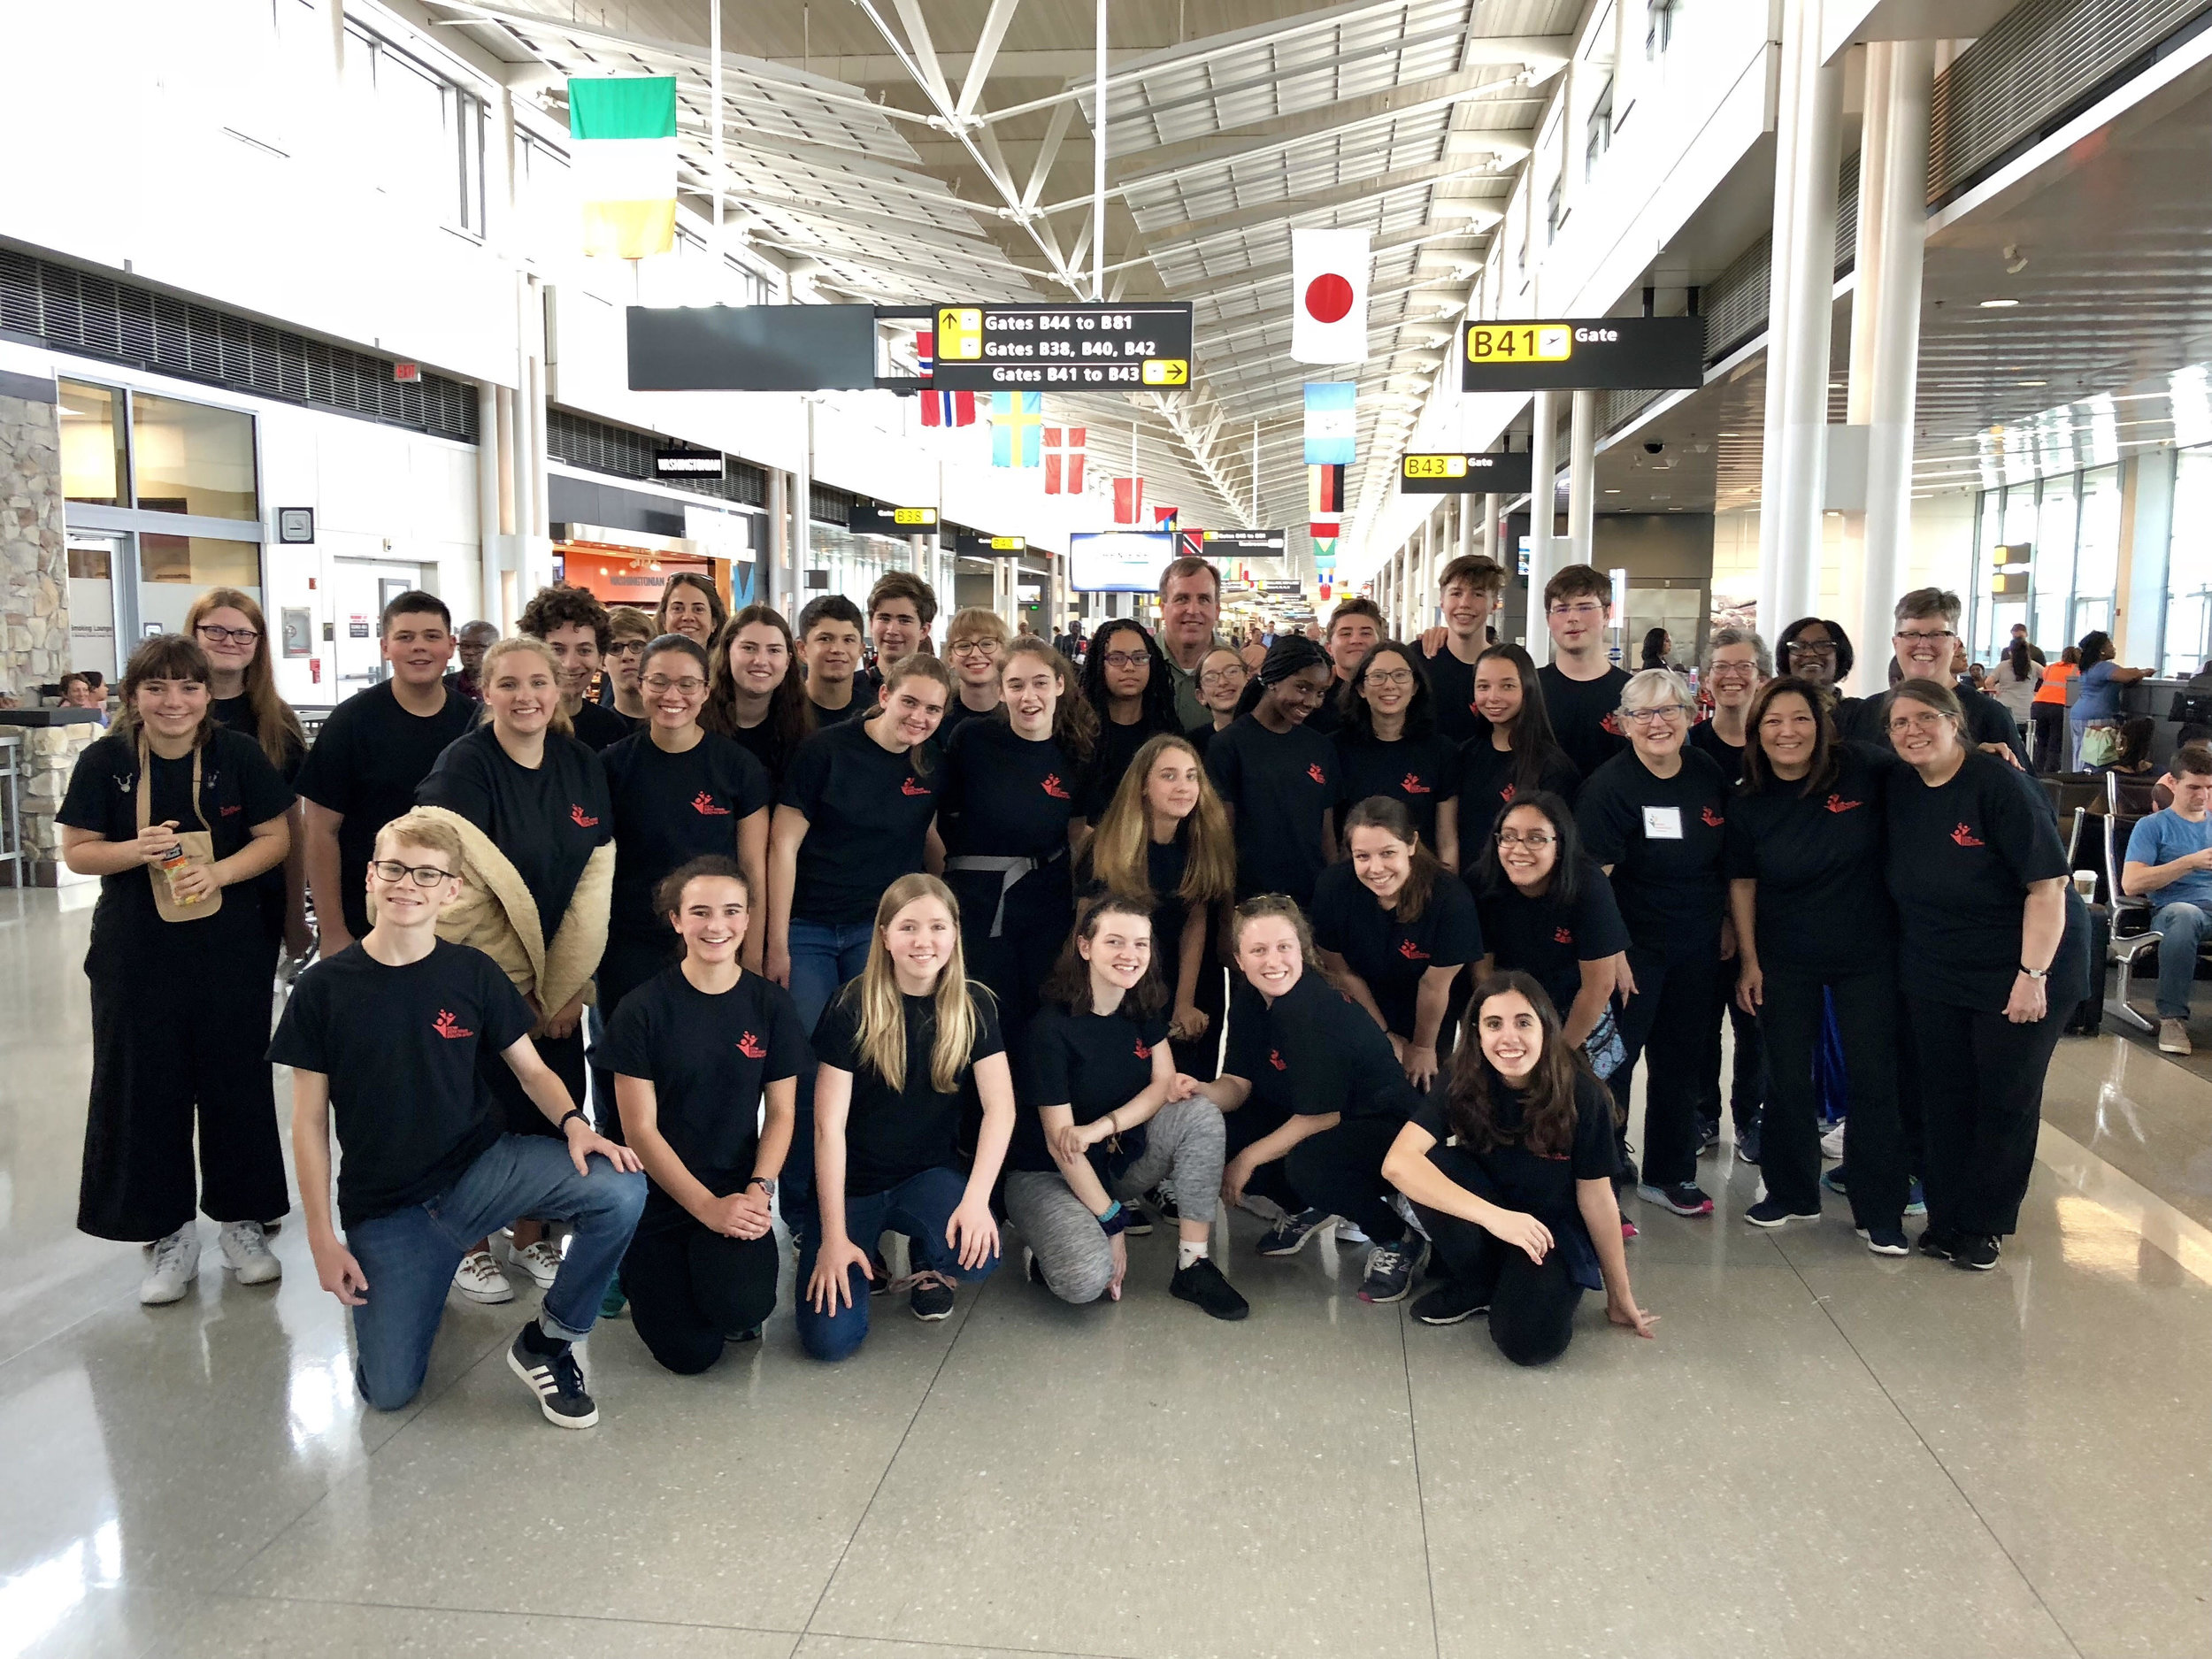 Students at Dulles airport prior to their departure on Friday, June 29. Photo: Scott Clark